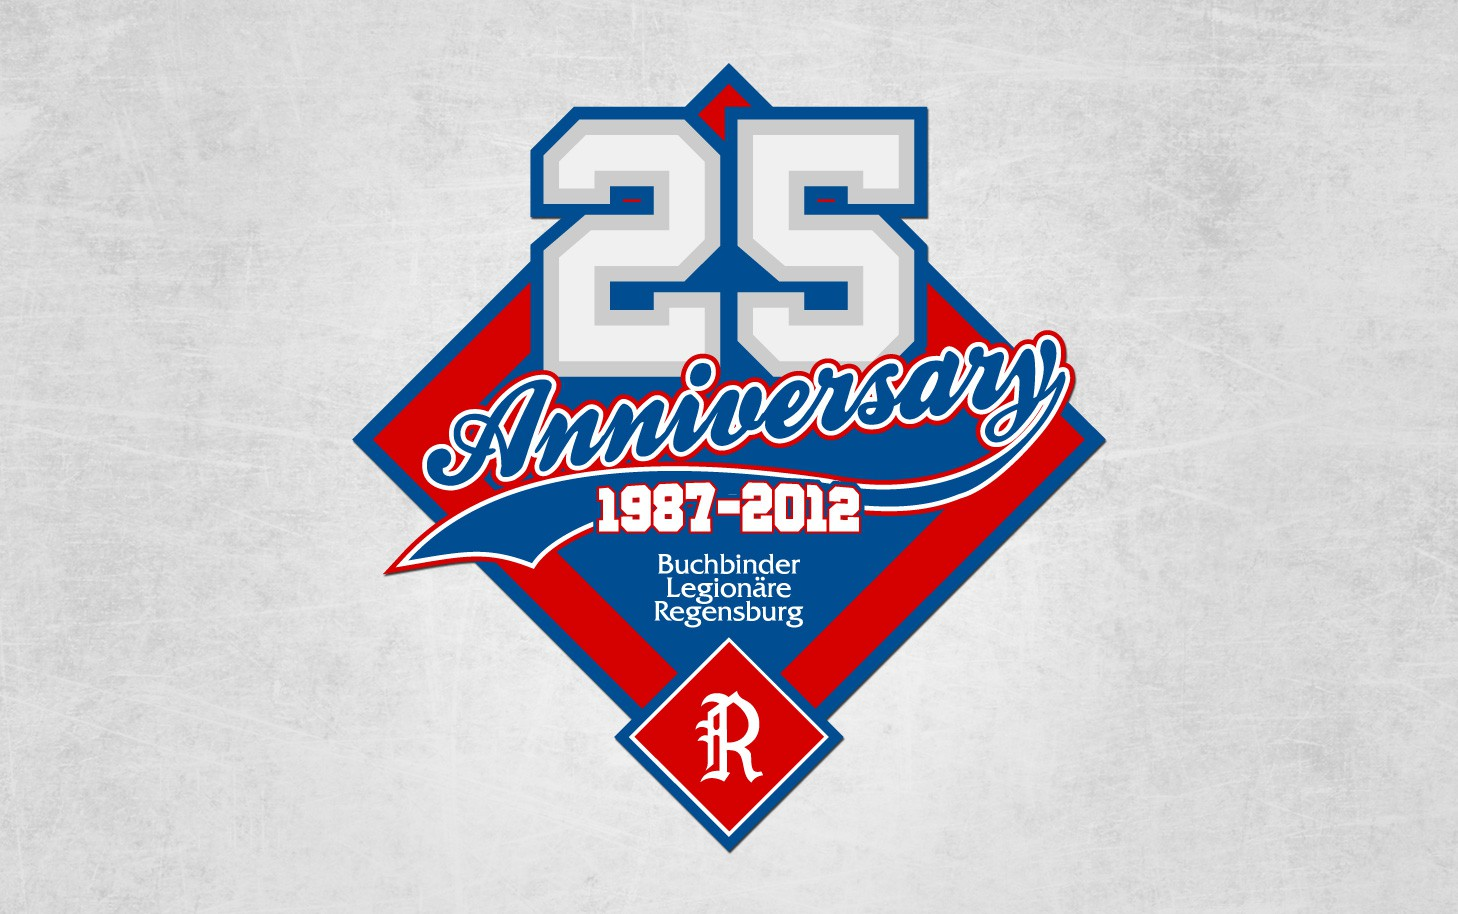 Help our Baseball Club with a new logo for our 25yrs celebration